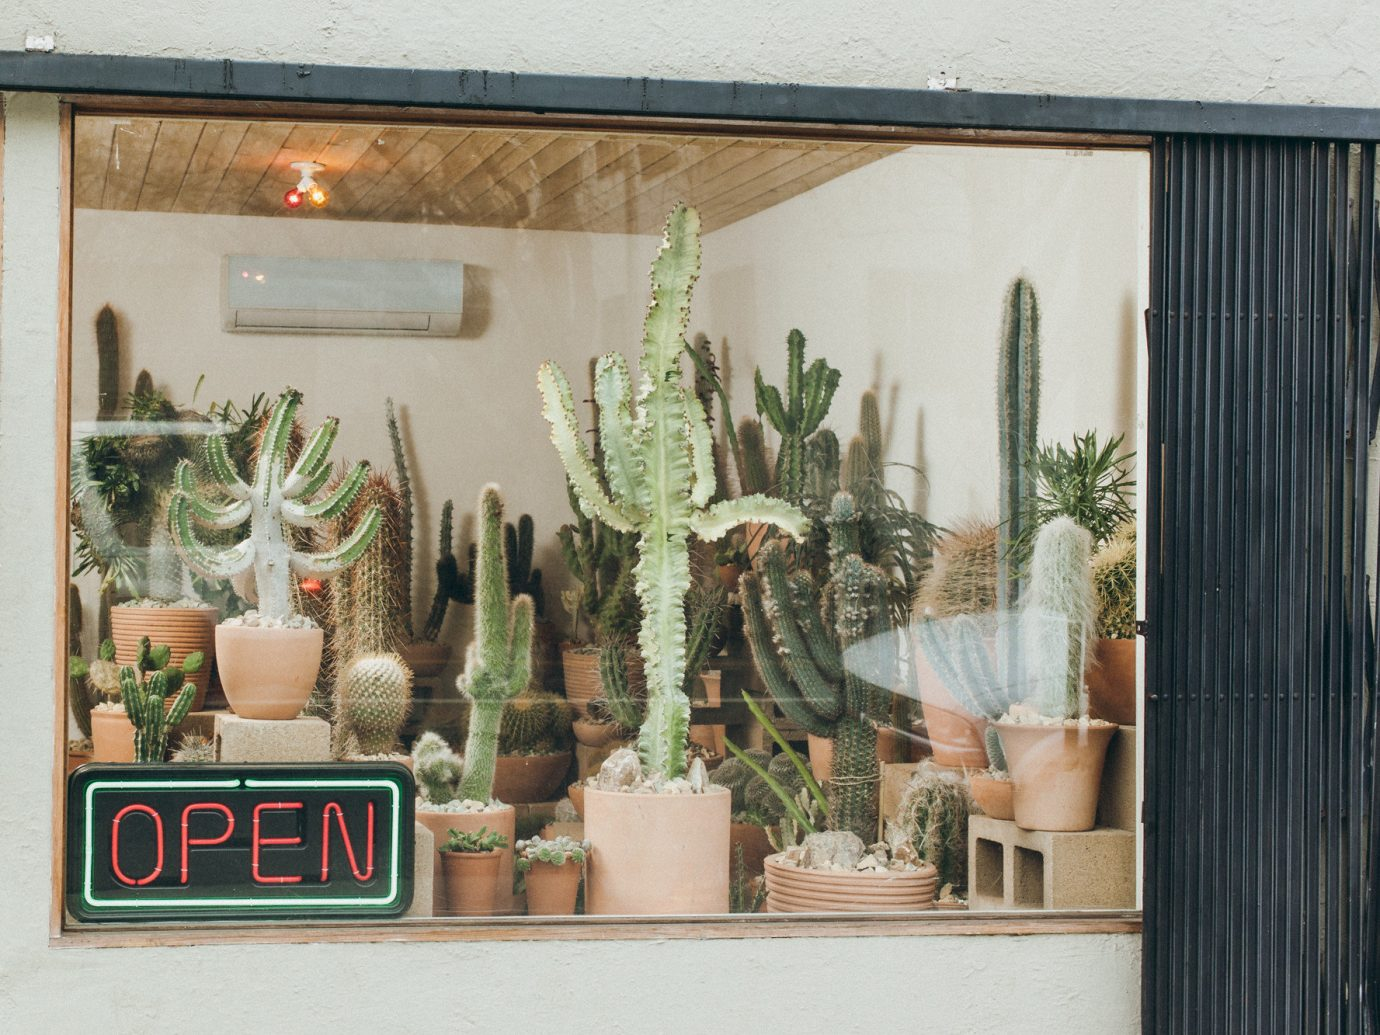 Offbeat Style + Design Travel Trends plant cactus flower floristry window floral design